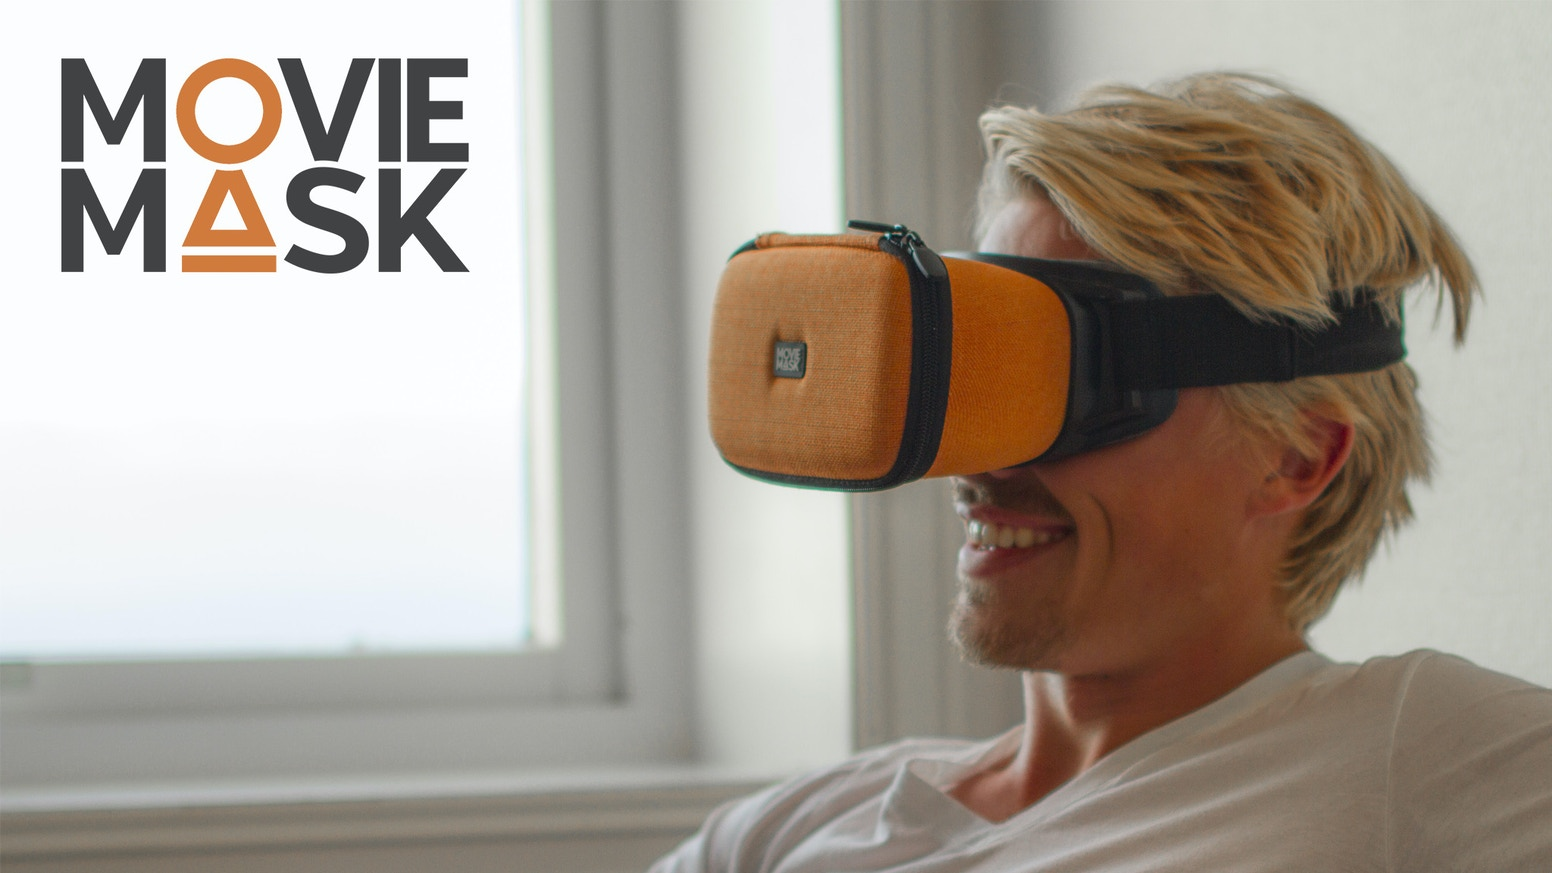 The unique gadget that gives you the ultimate 2D cinema experience using your smartphone!